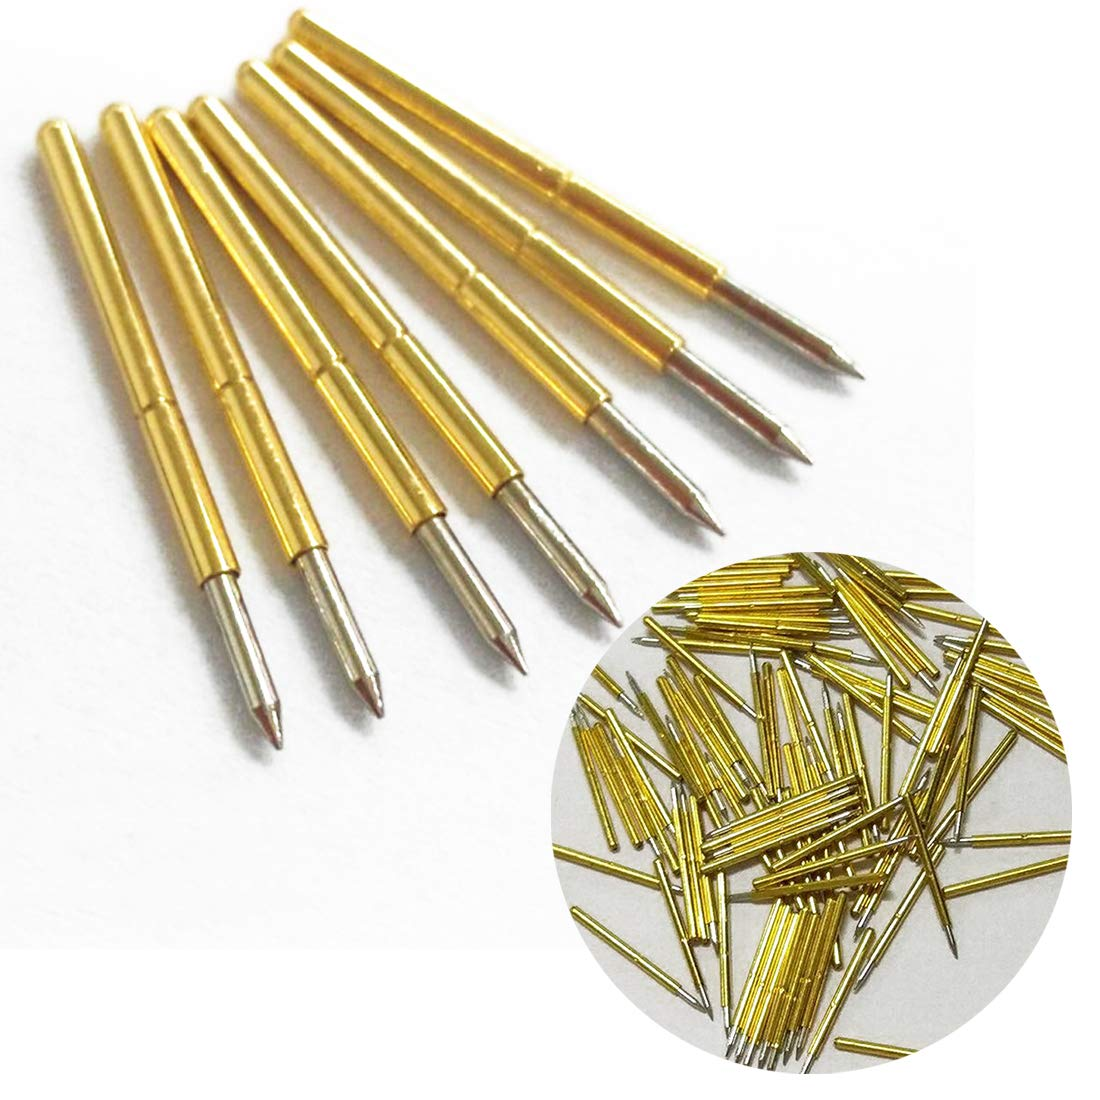 joyliveCY Golden and Silver Spring Straight Spherical Tip 100pcs P75-B1 Spring Test Probes Pogo Pins